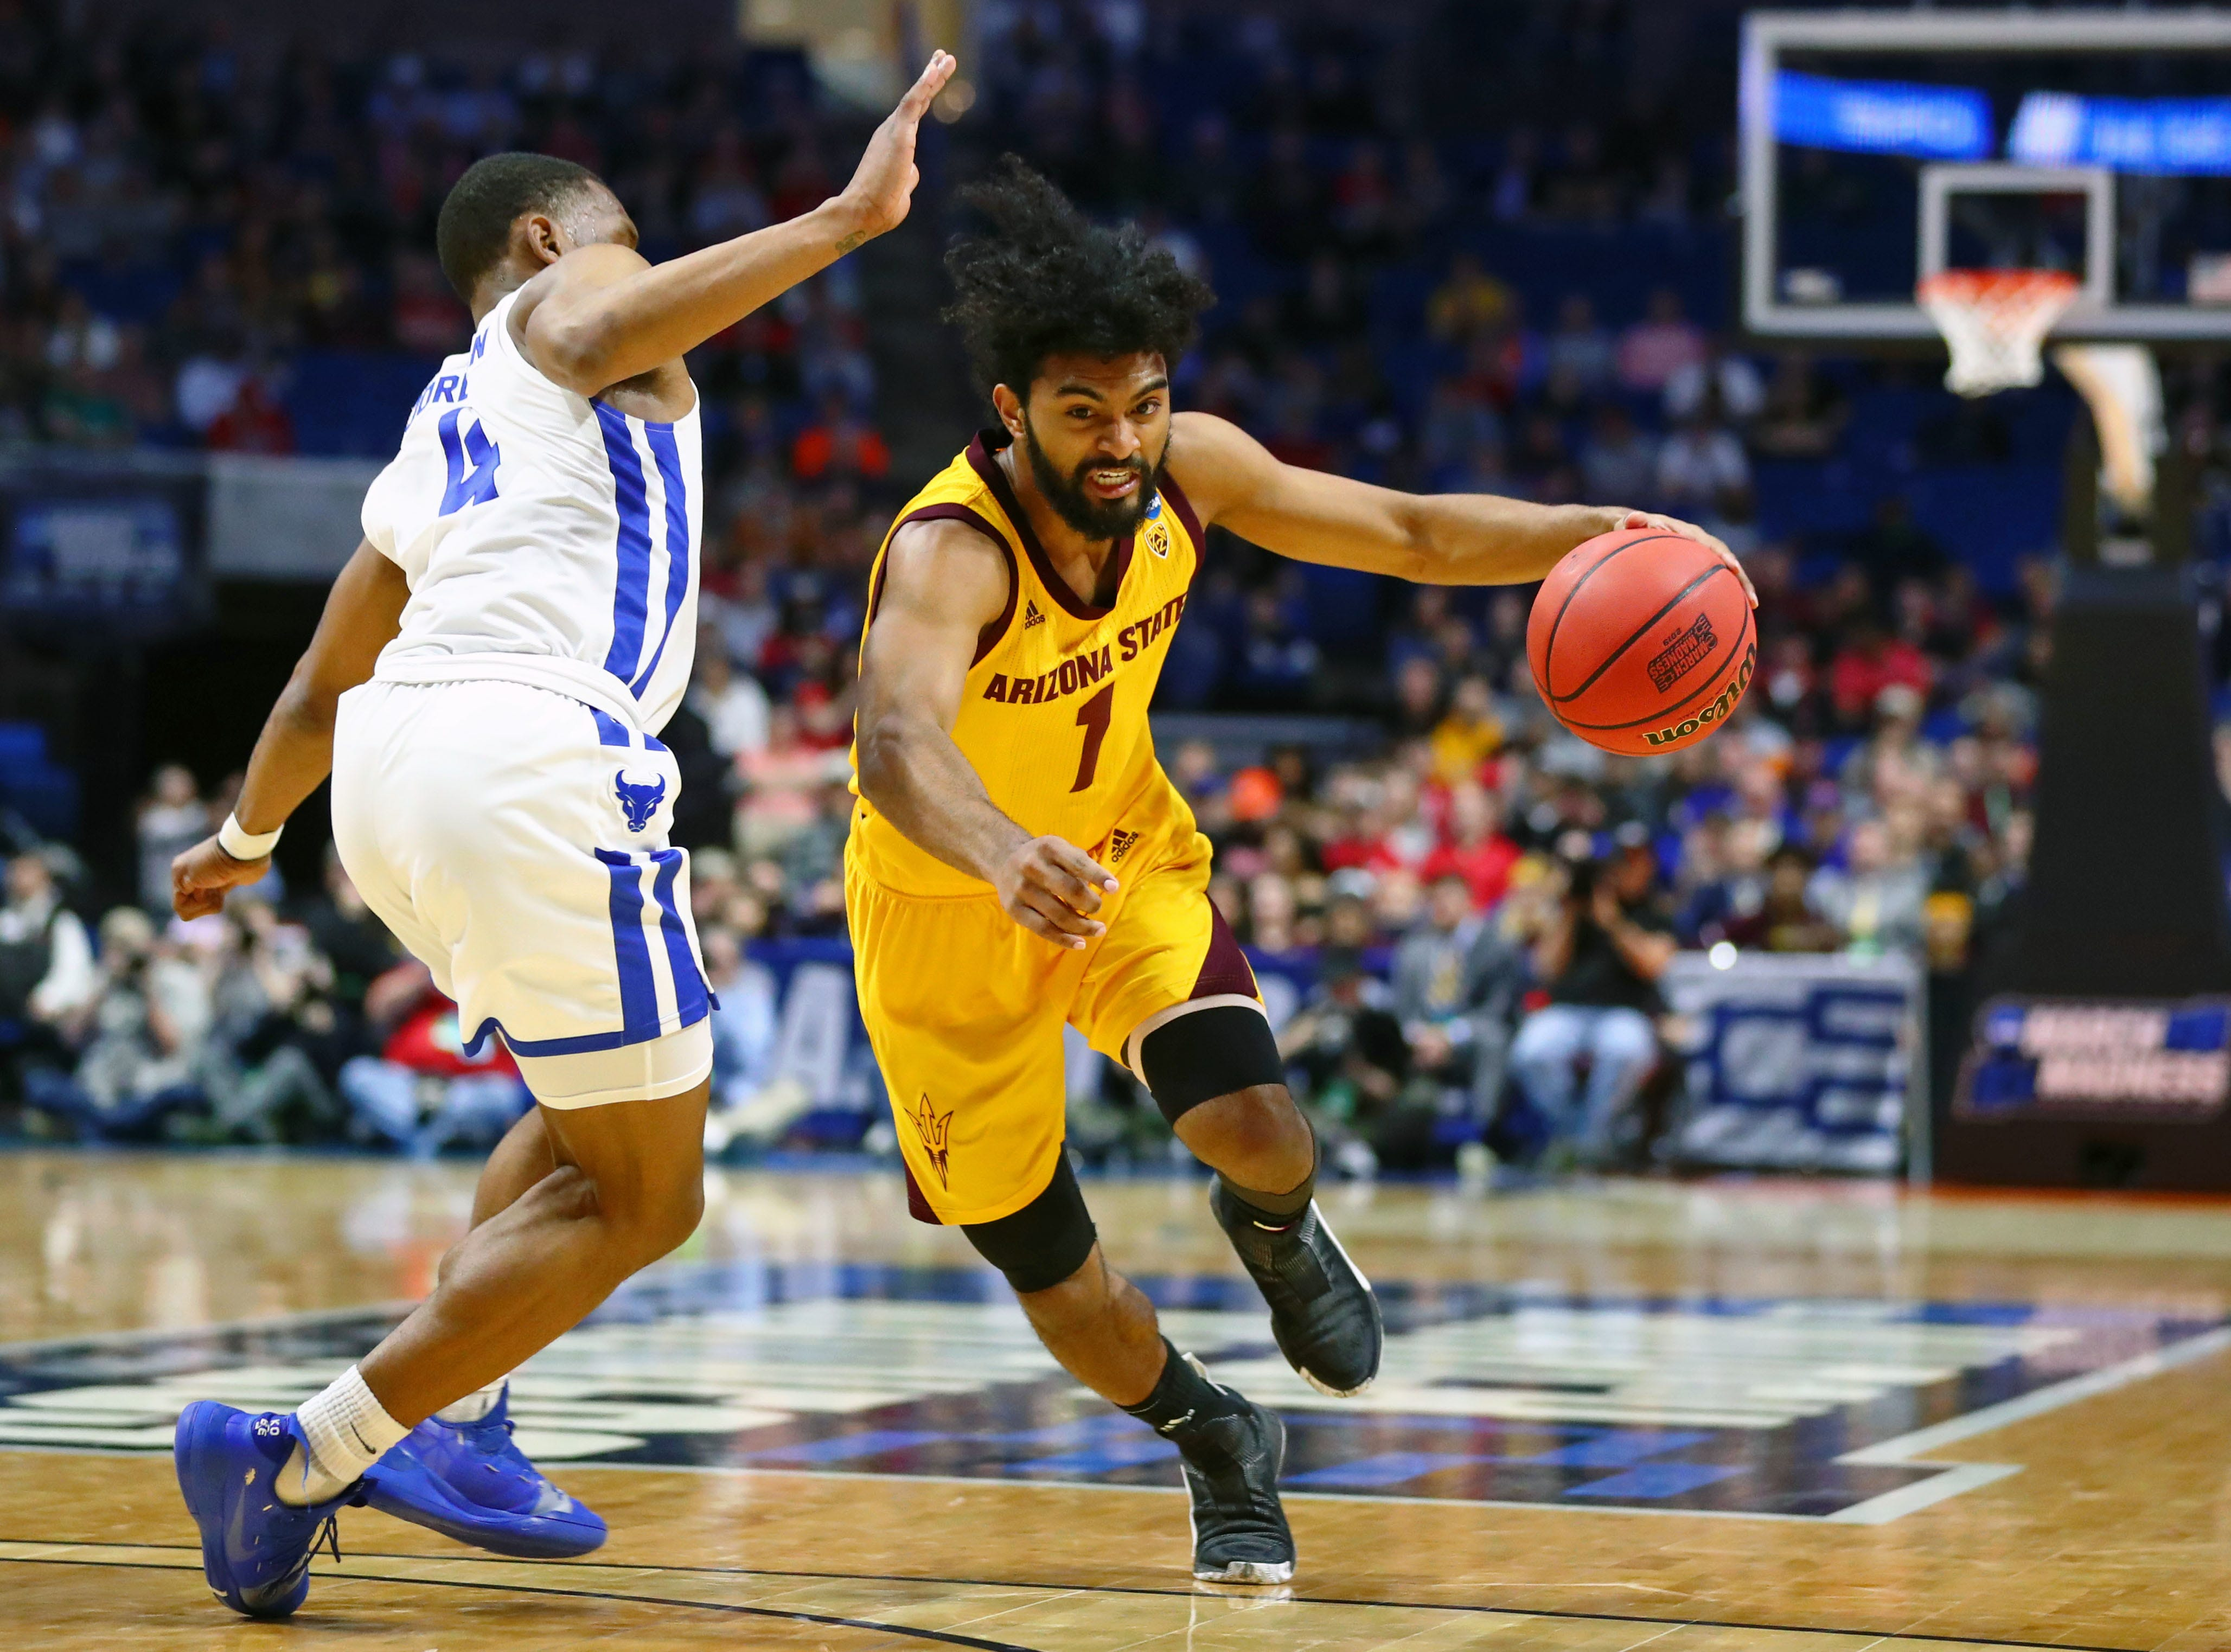 Mar 22, 2019; Tulsa, OK, USA; Arizona State Sun Devils guard Remy Martin (1) dribbles around Buffalo Bulls guard Davonta Jordan (4) during the first half in the first round of the 2019 NCAA Tournament at BOK Center. Mandatory Credit: Mark J. Rebilas-USA TODAY Sports